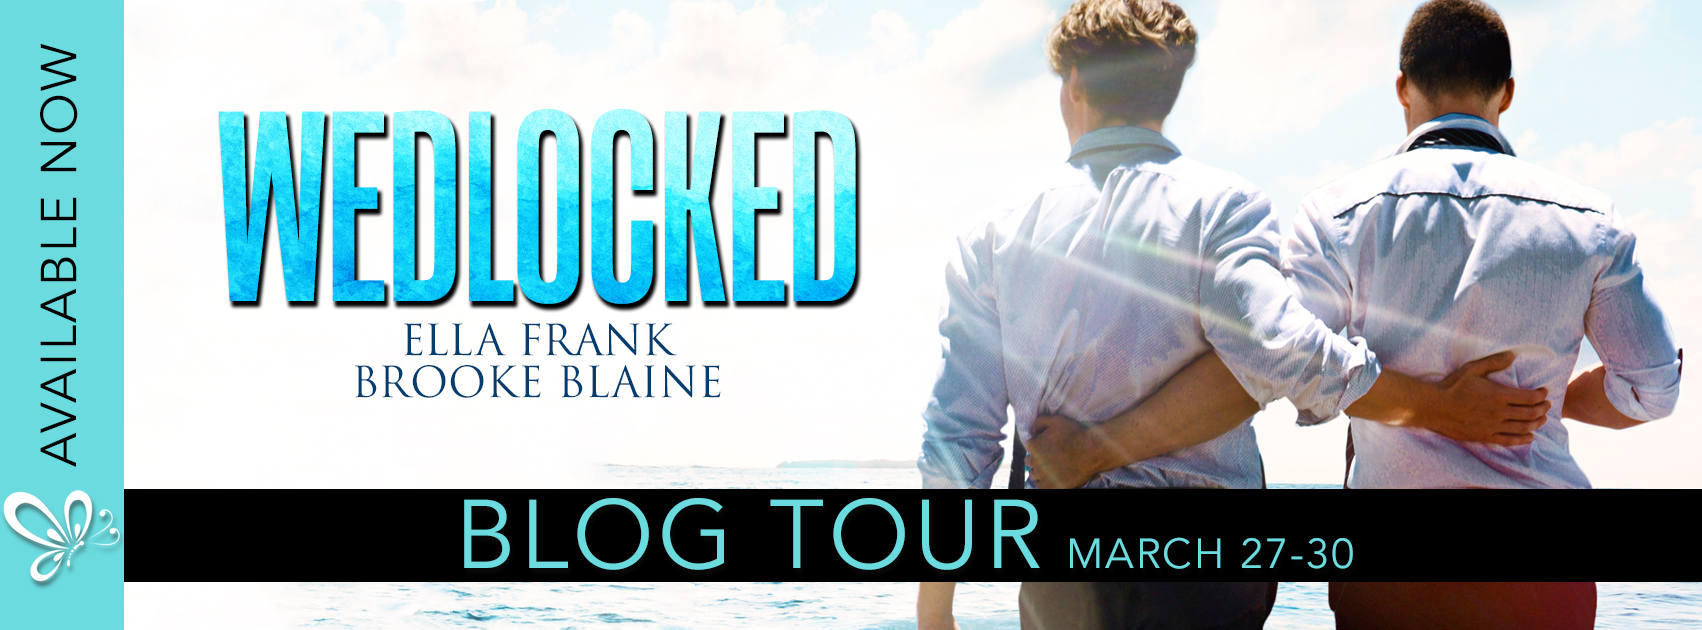 Blog Tour: Review, Excerpt & Giveaway Ella Frank & Brooke Blaine - Wedlocked